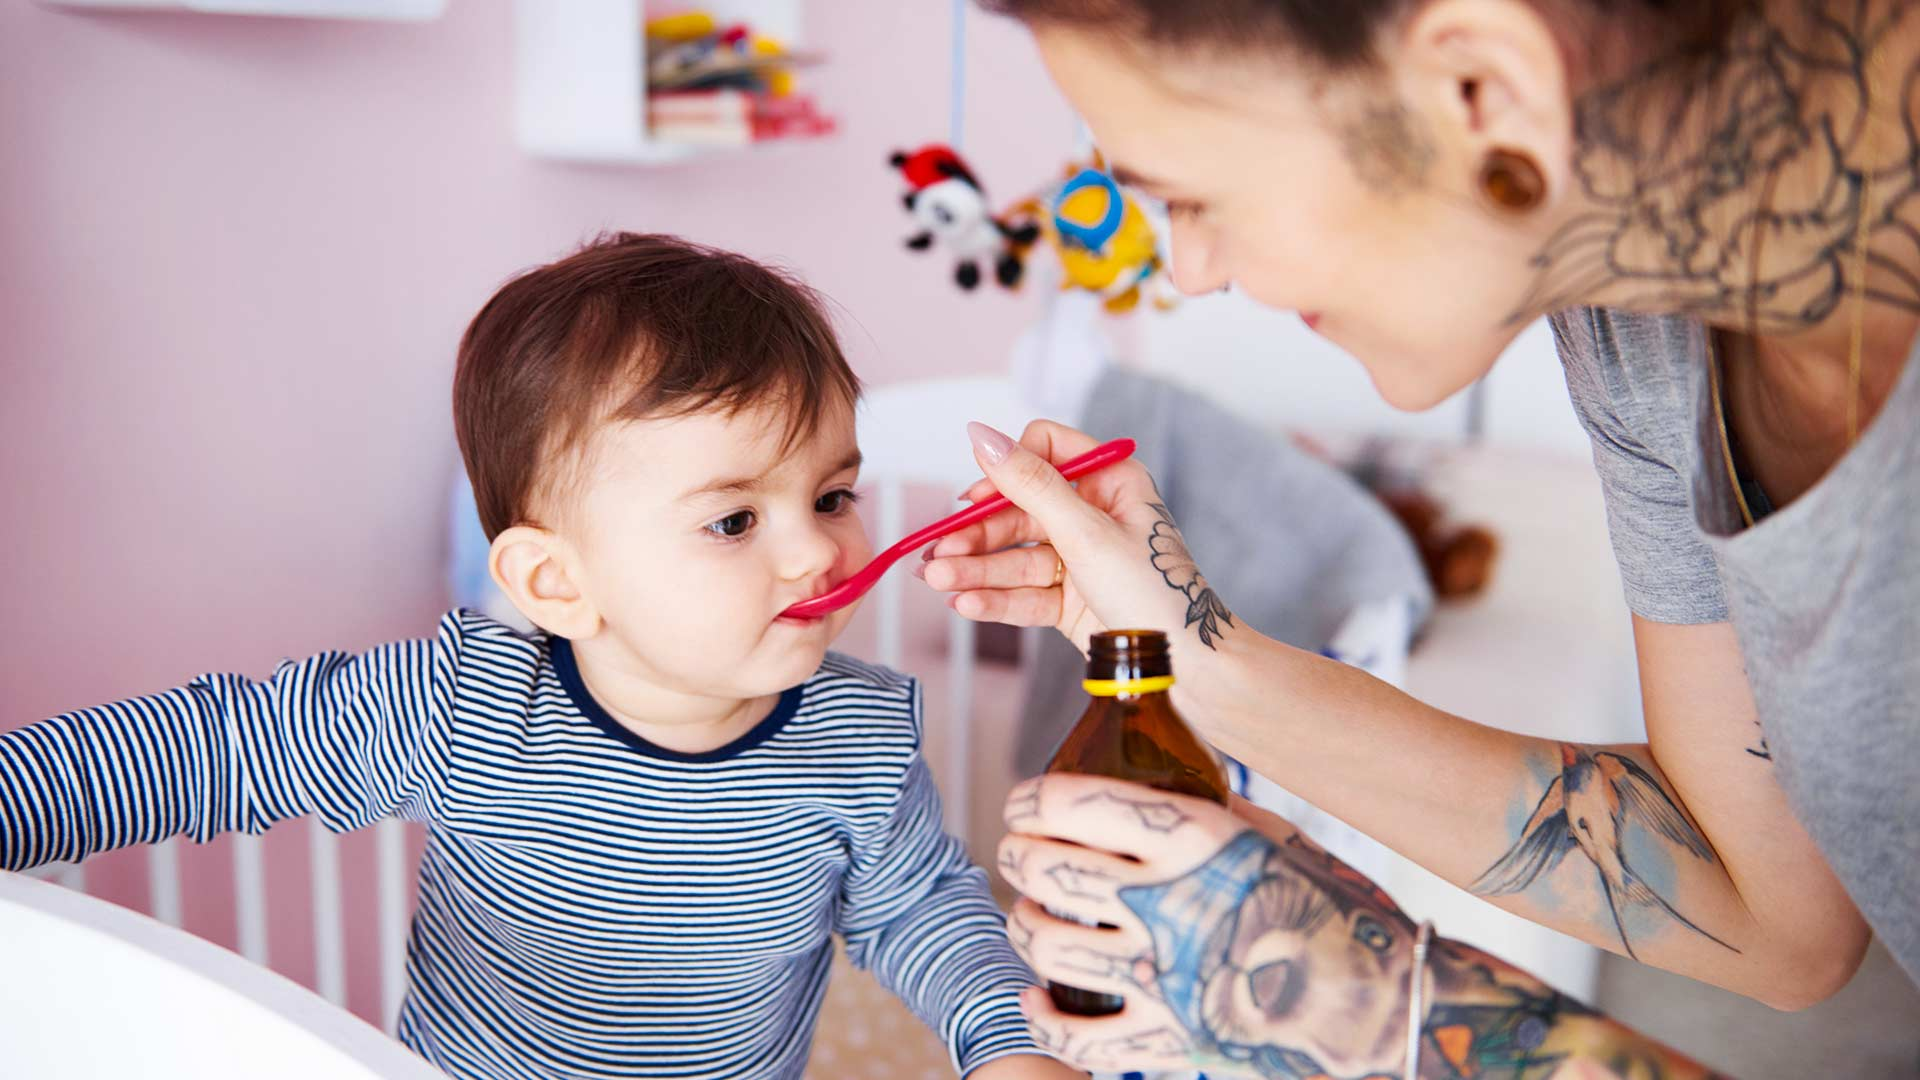 What To Know About Children's OTC Medications